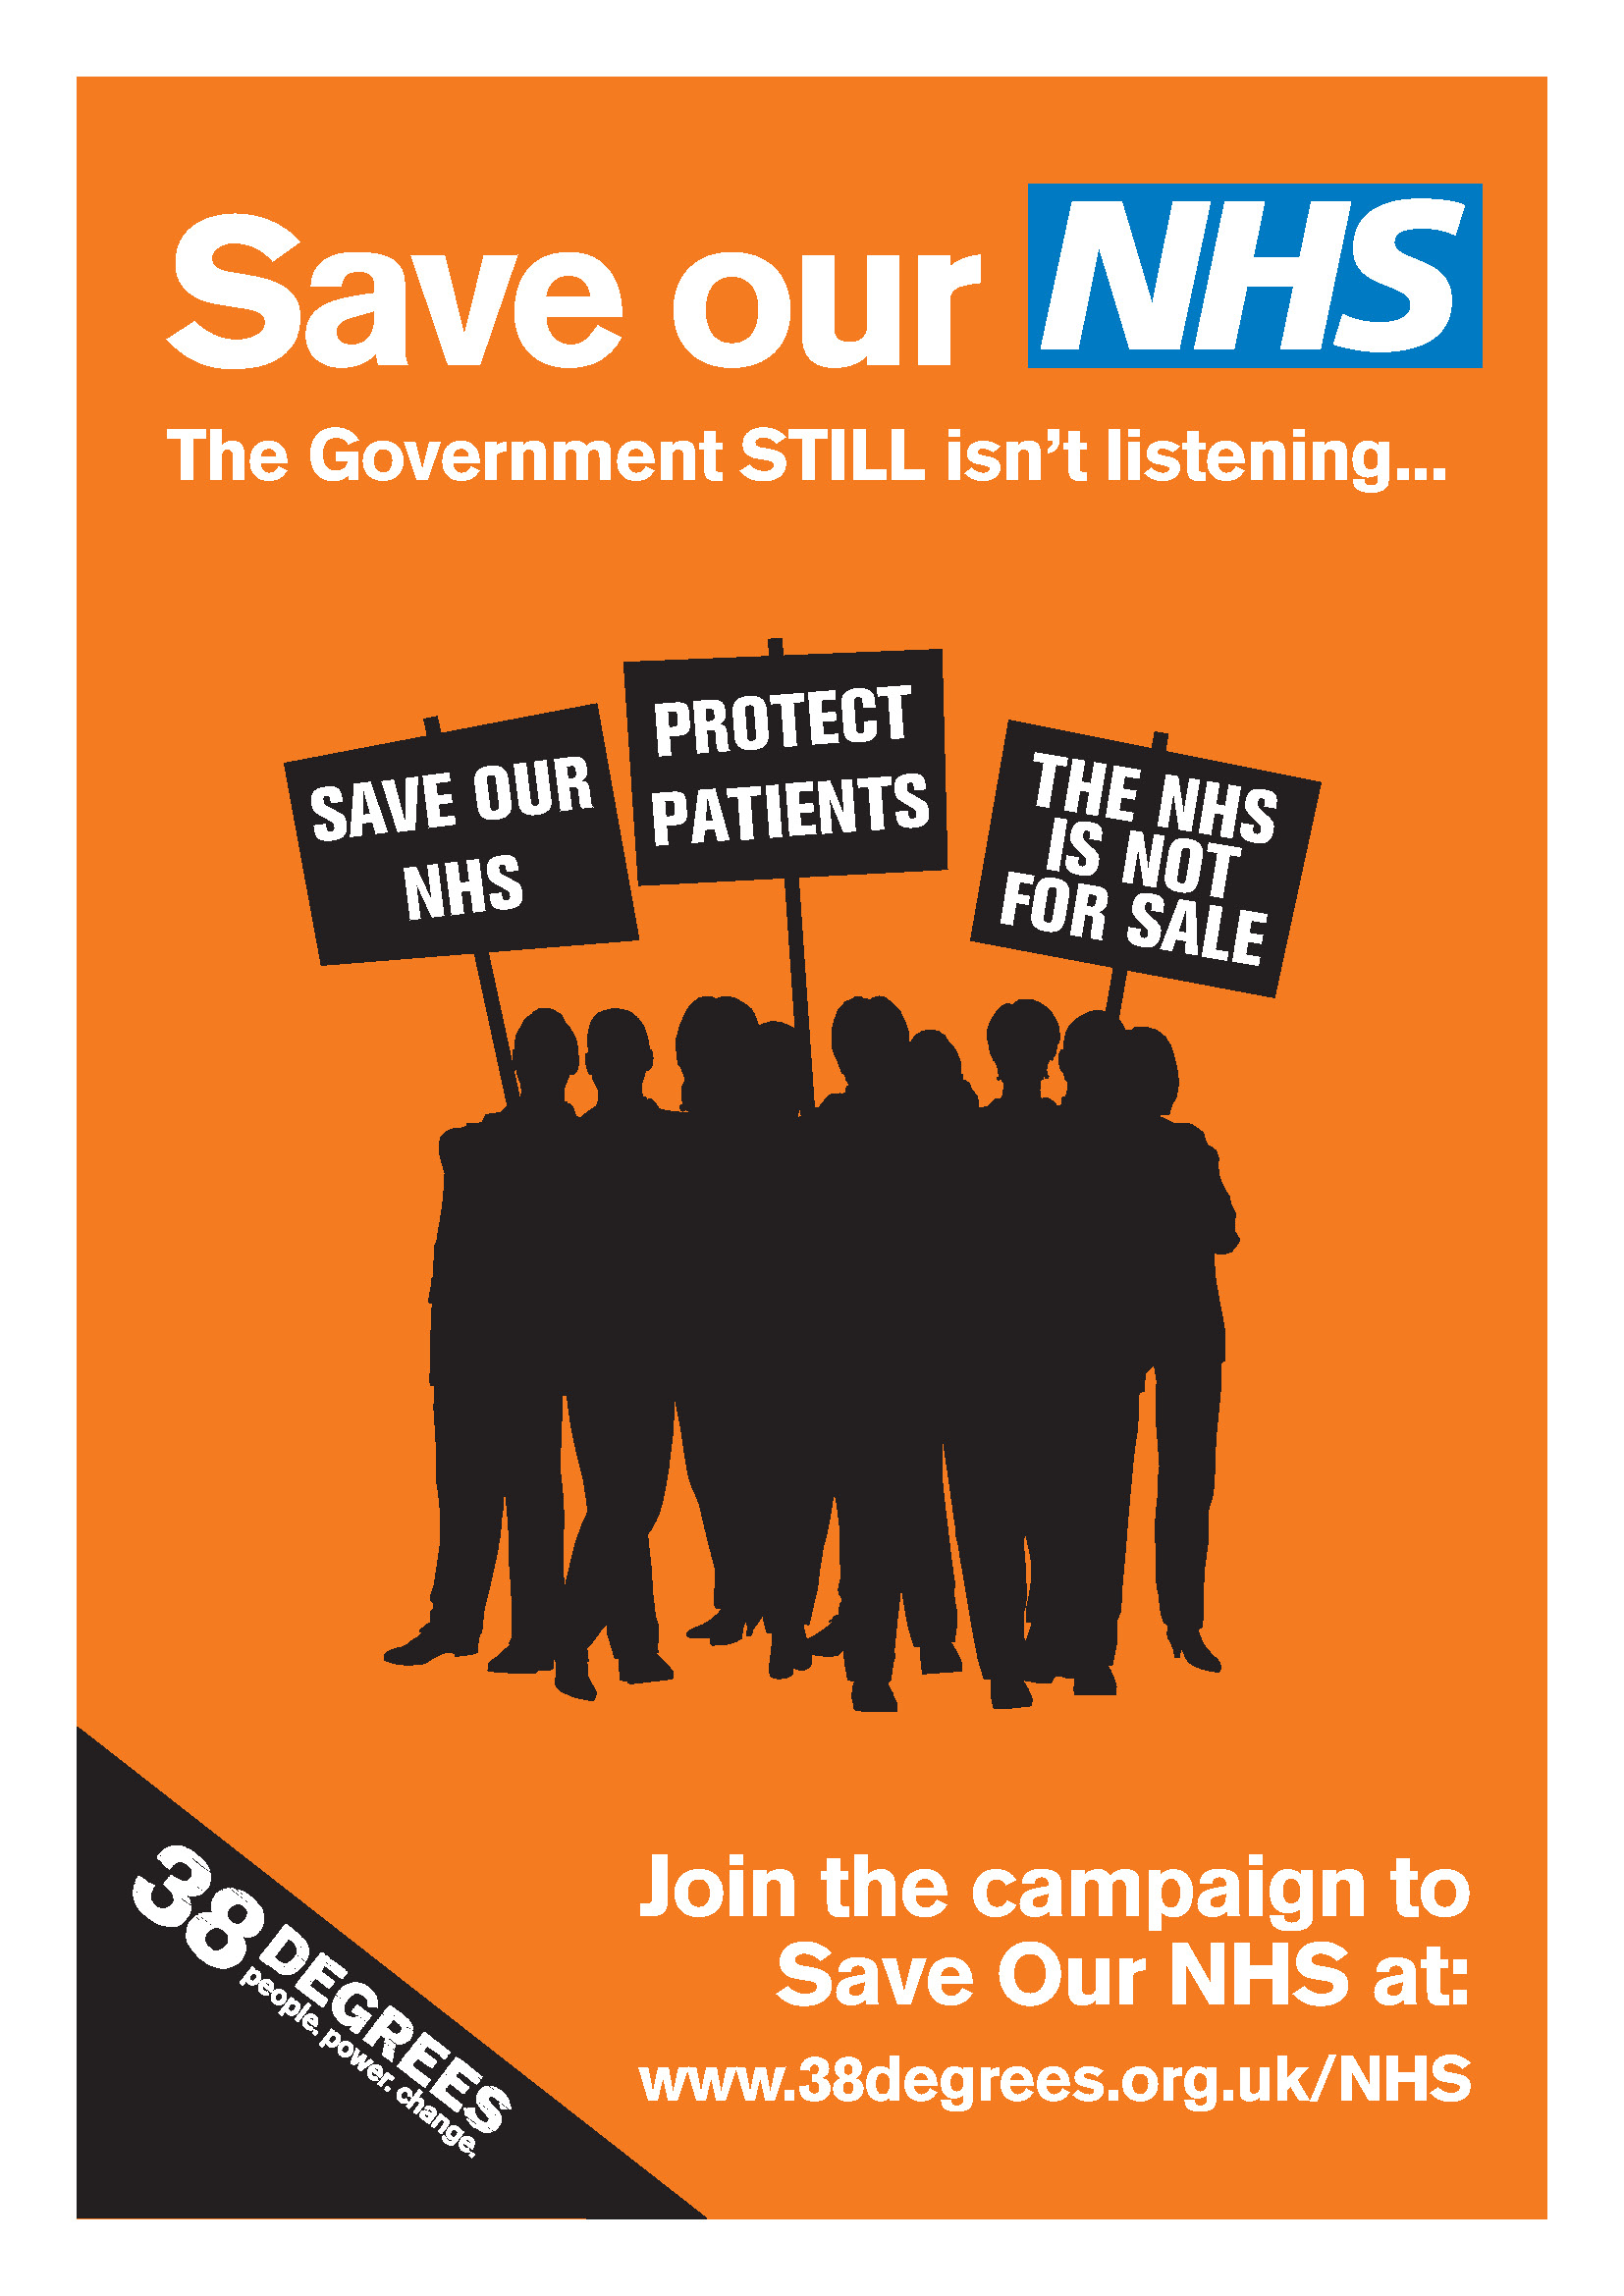 Save our NHS link